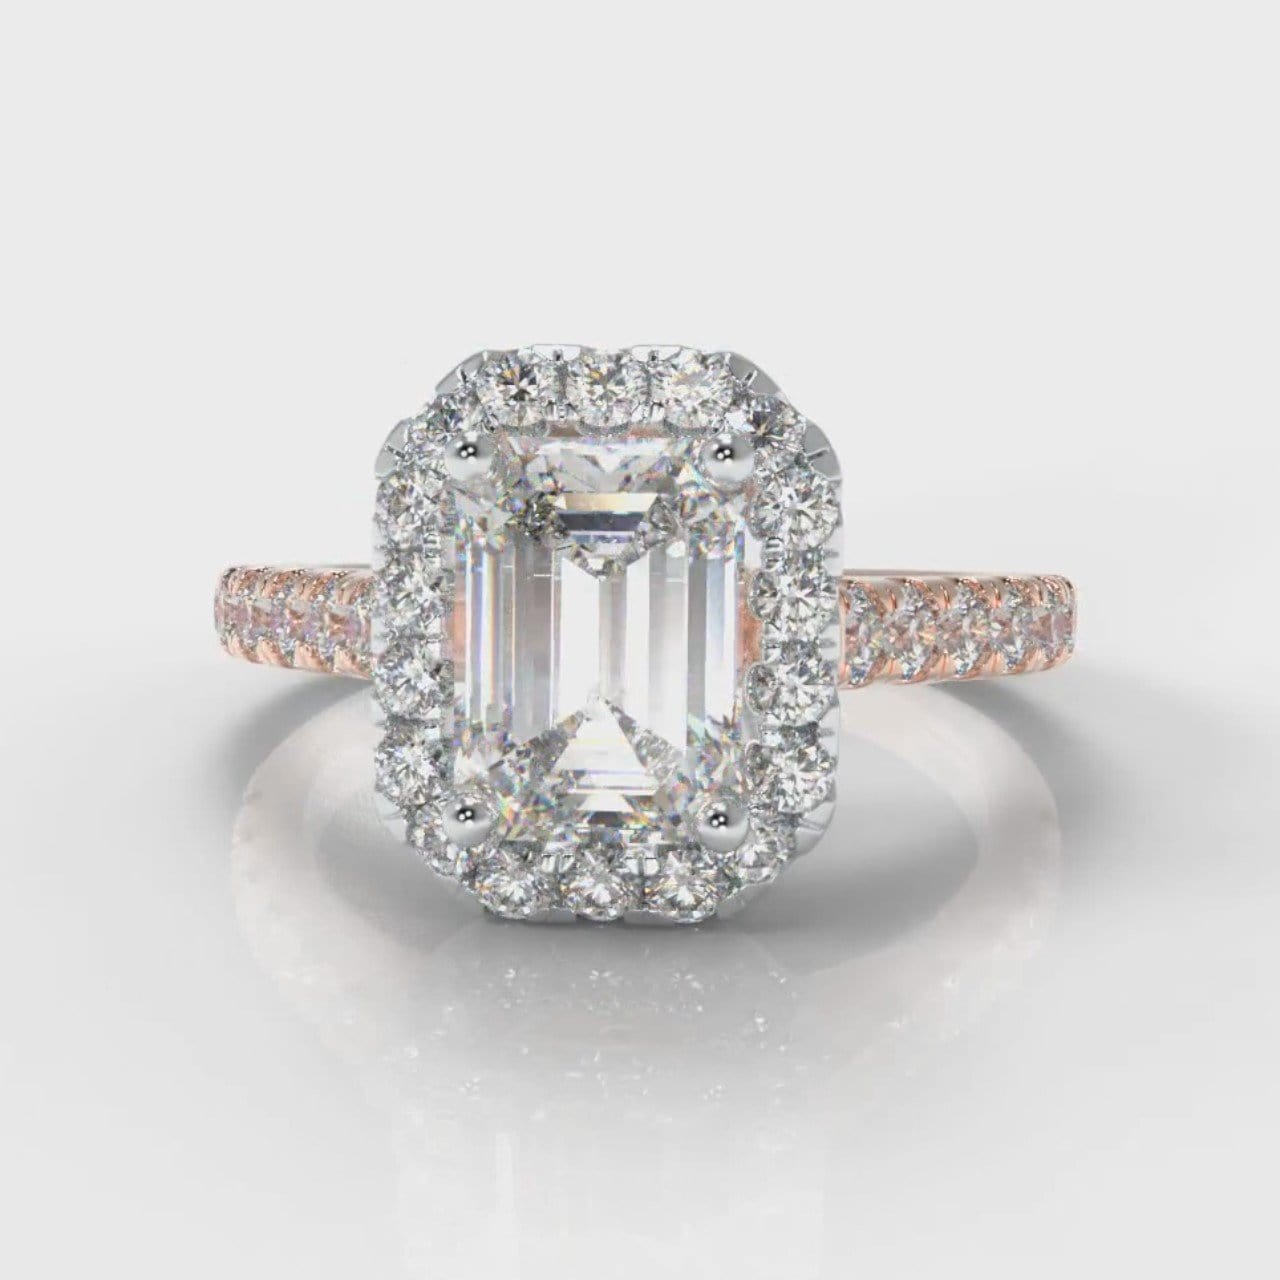 Micropavé Emerald Cut Diamond Halo Engagement Ring - Two Tone Rose Gold